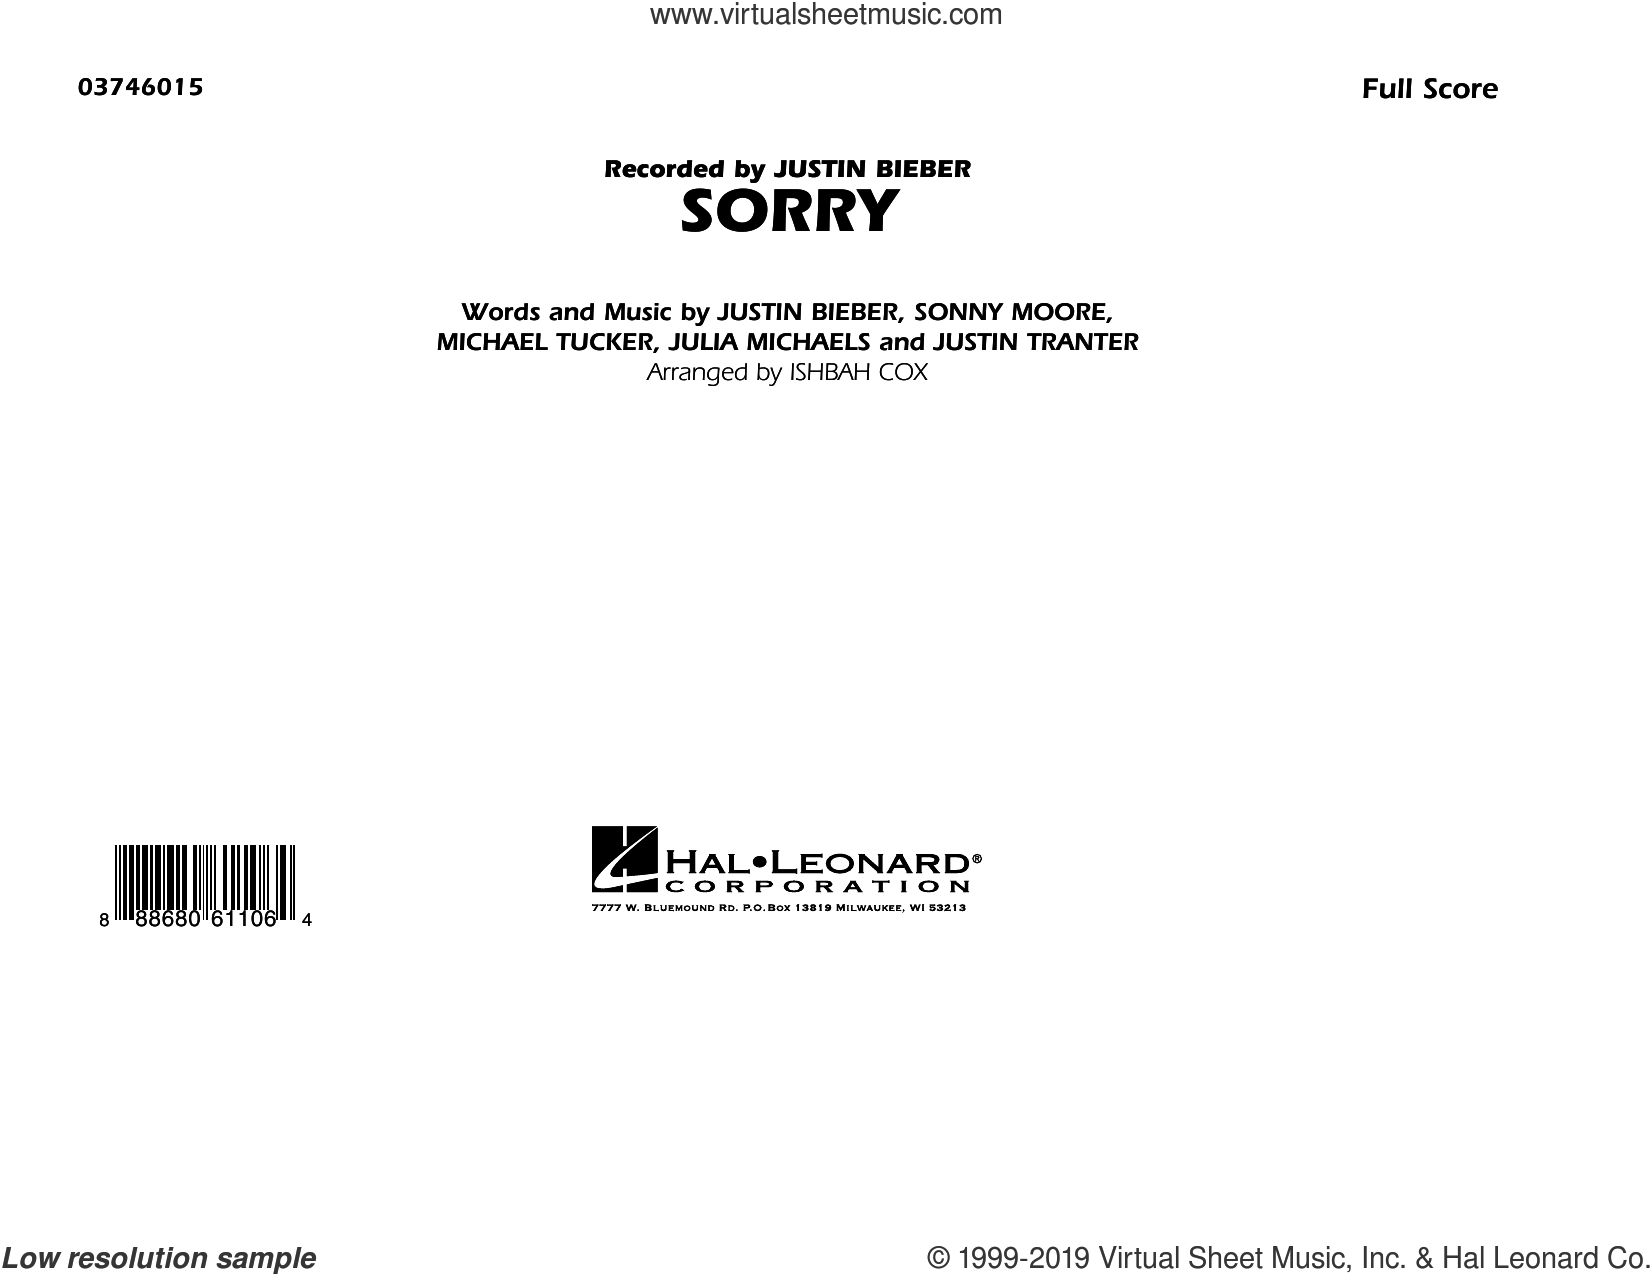 Sorry (COMPLETE) sheet music for marching band by Justin Bieber, Ishbah Cox, Julia Michaels, Justin Tranter, Michael Tucker and Sonny Moore, intermediate skill level